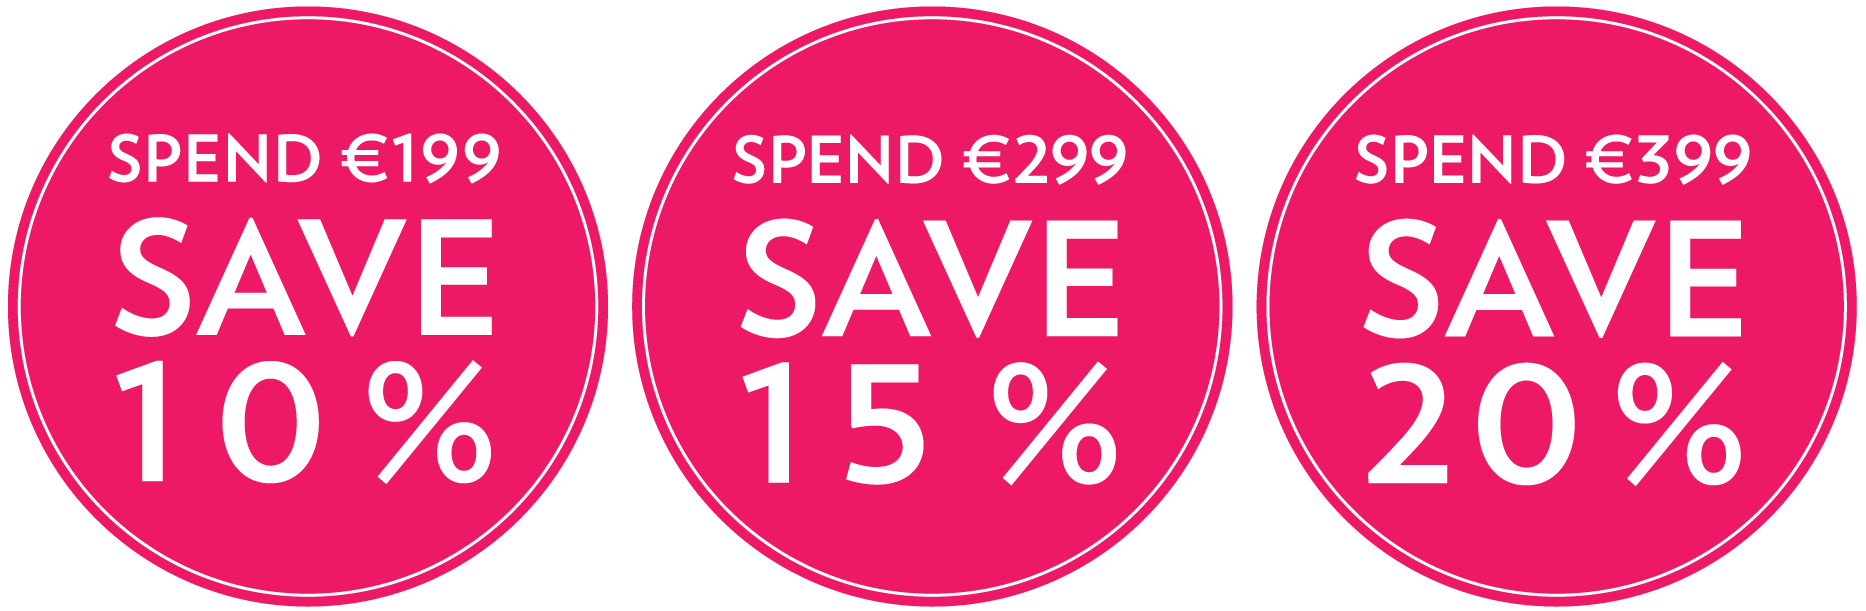 Image of Bodyrock Build your own bundle pricing in pink coloured bubbles with text Spend €199 to SAVE 10 percent or Spend €299 to SAVE 15 percent or Spend €399 to SAVE 20 percent